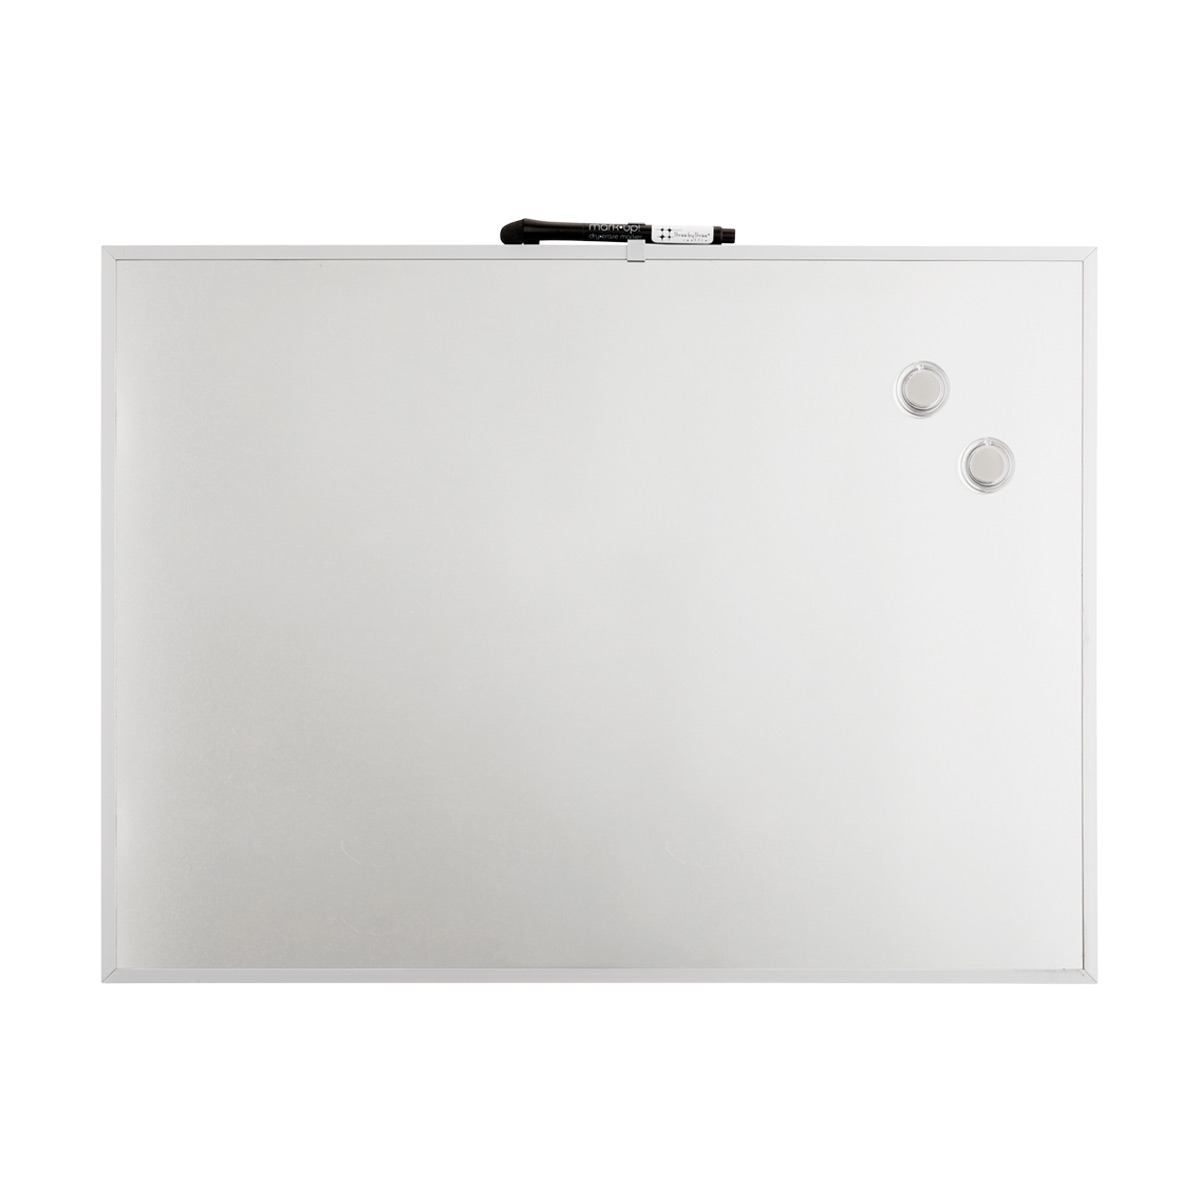 Stainless Magnetic Dry Erase Board